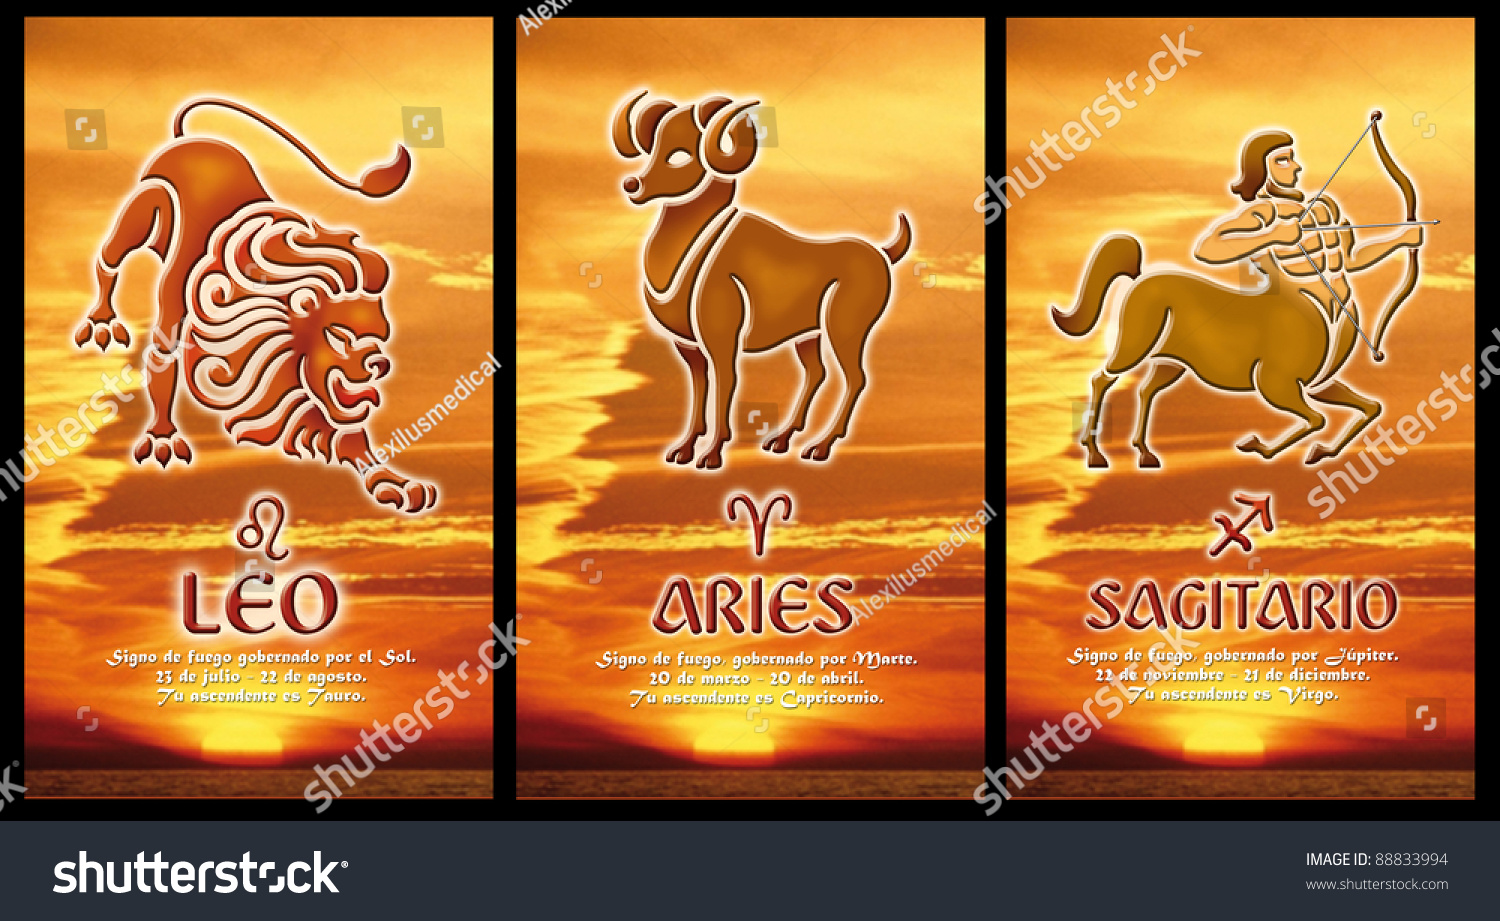 Zodiacal Signs Leo Aries Sagittarius Spanish Stock Photo